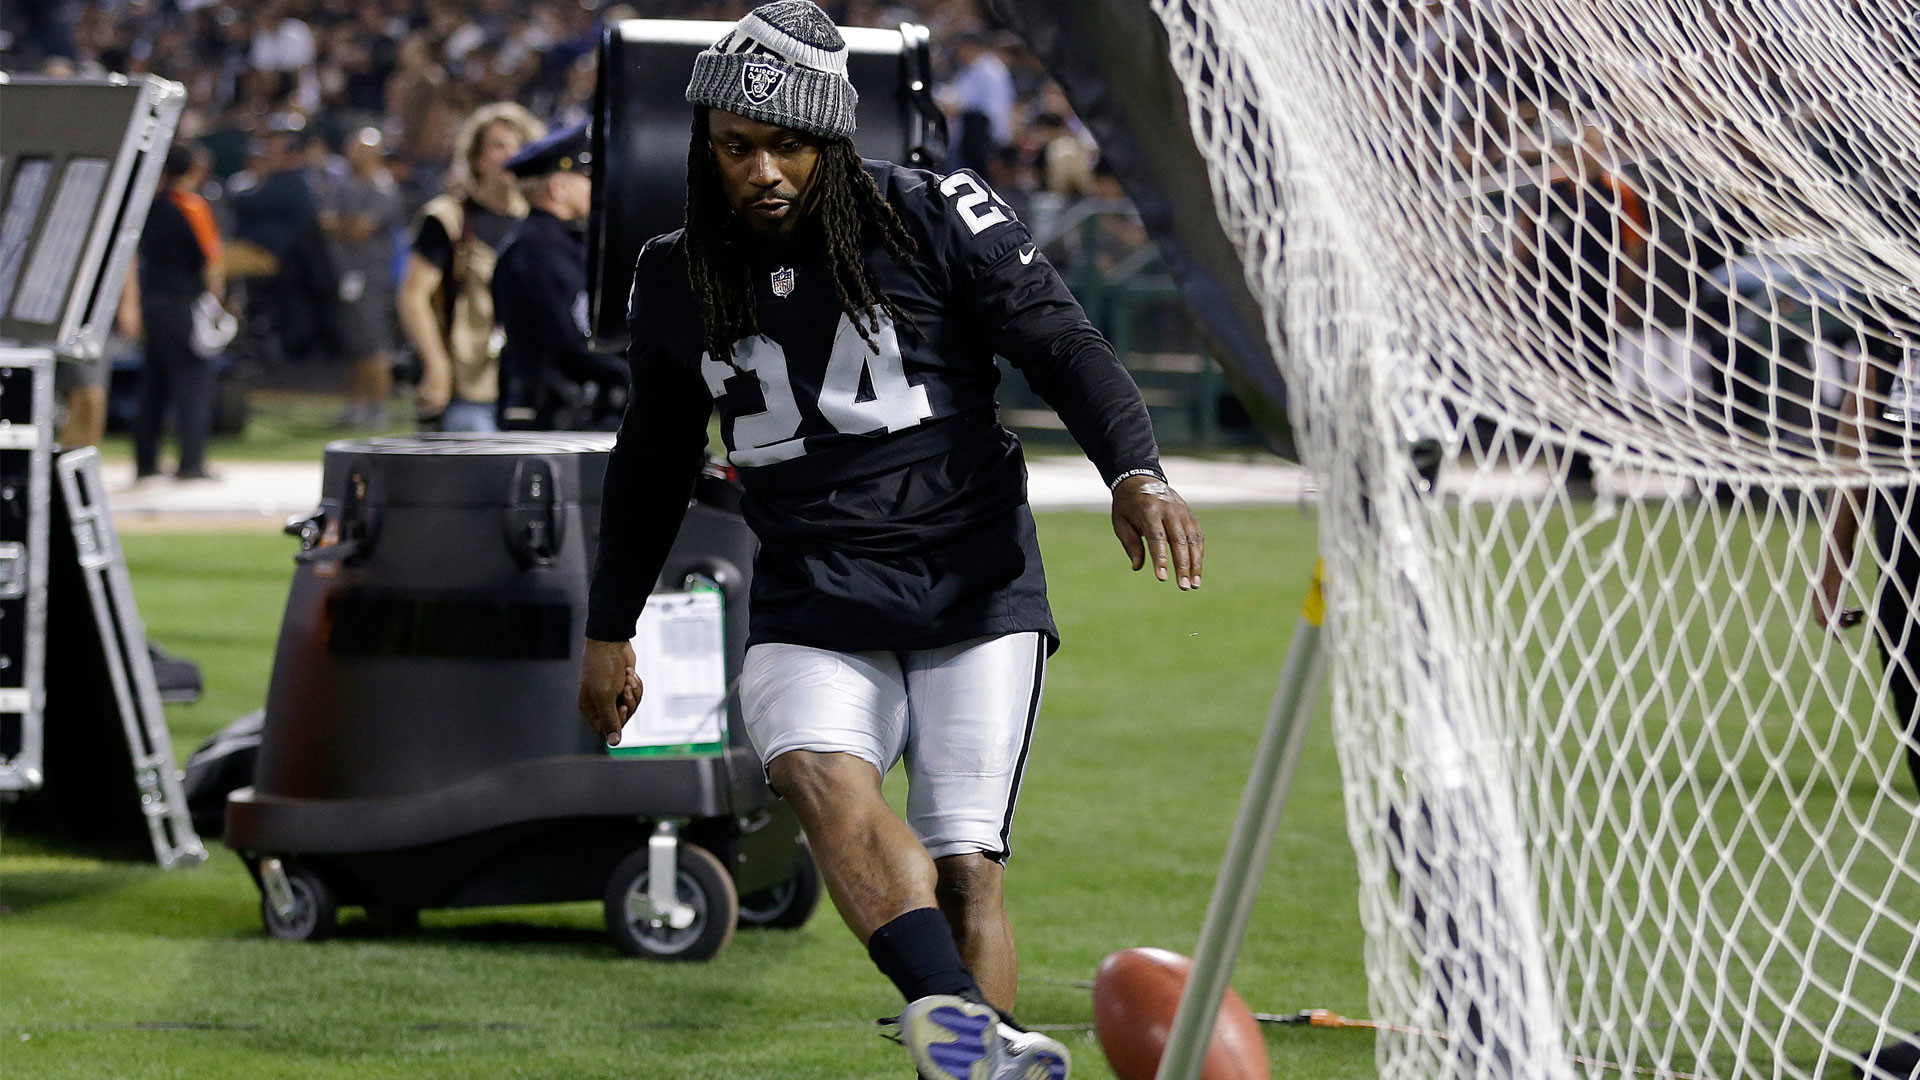 Lynch 'seems fresh, energized' ready to start first Raiders campaign | NBCS  Bay Area